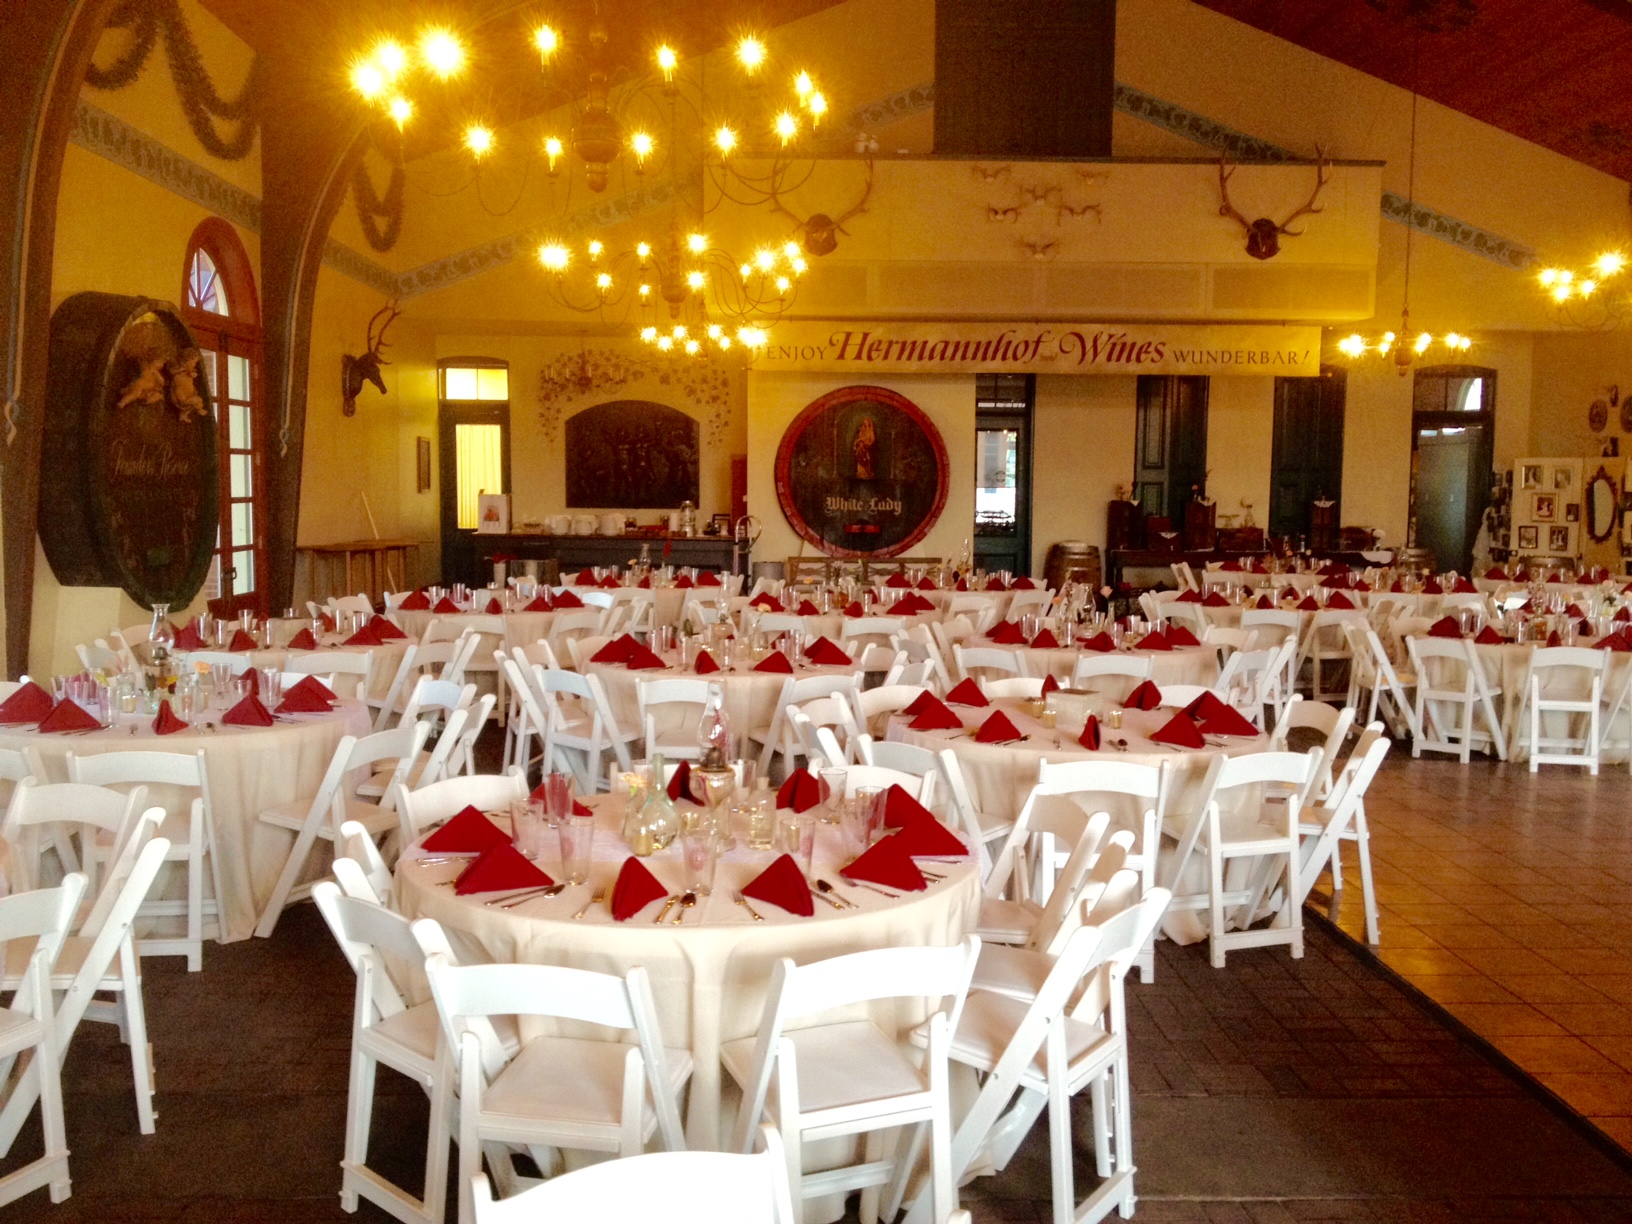 decorate tables and chairs at a wedding venue